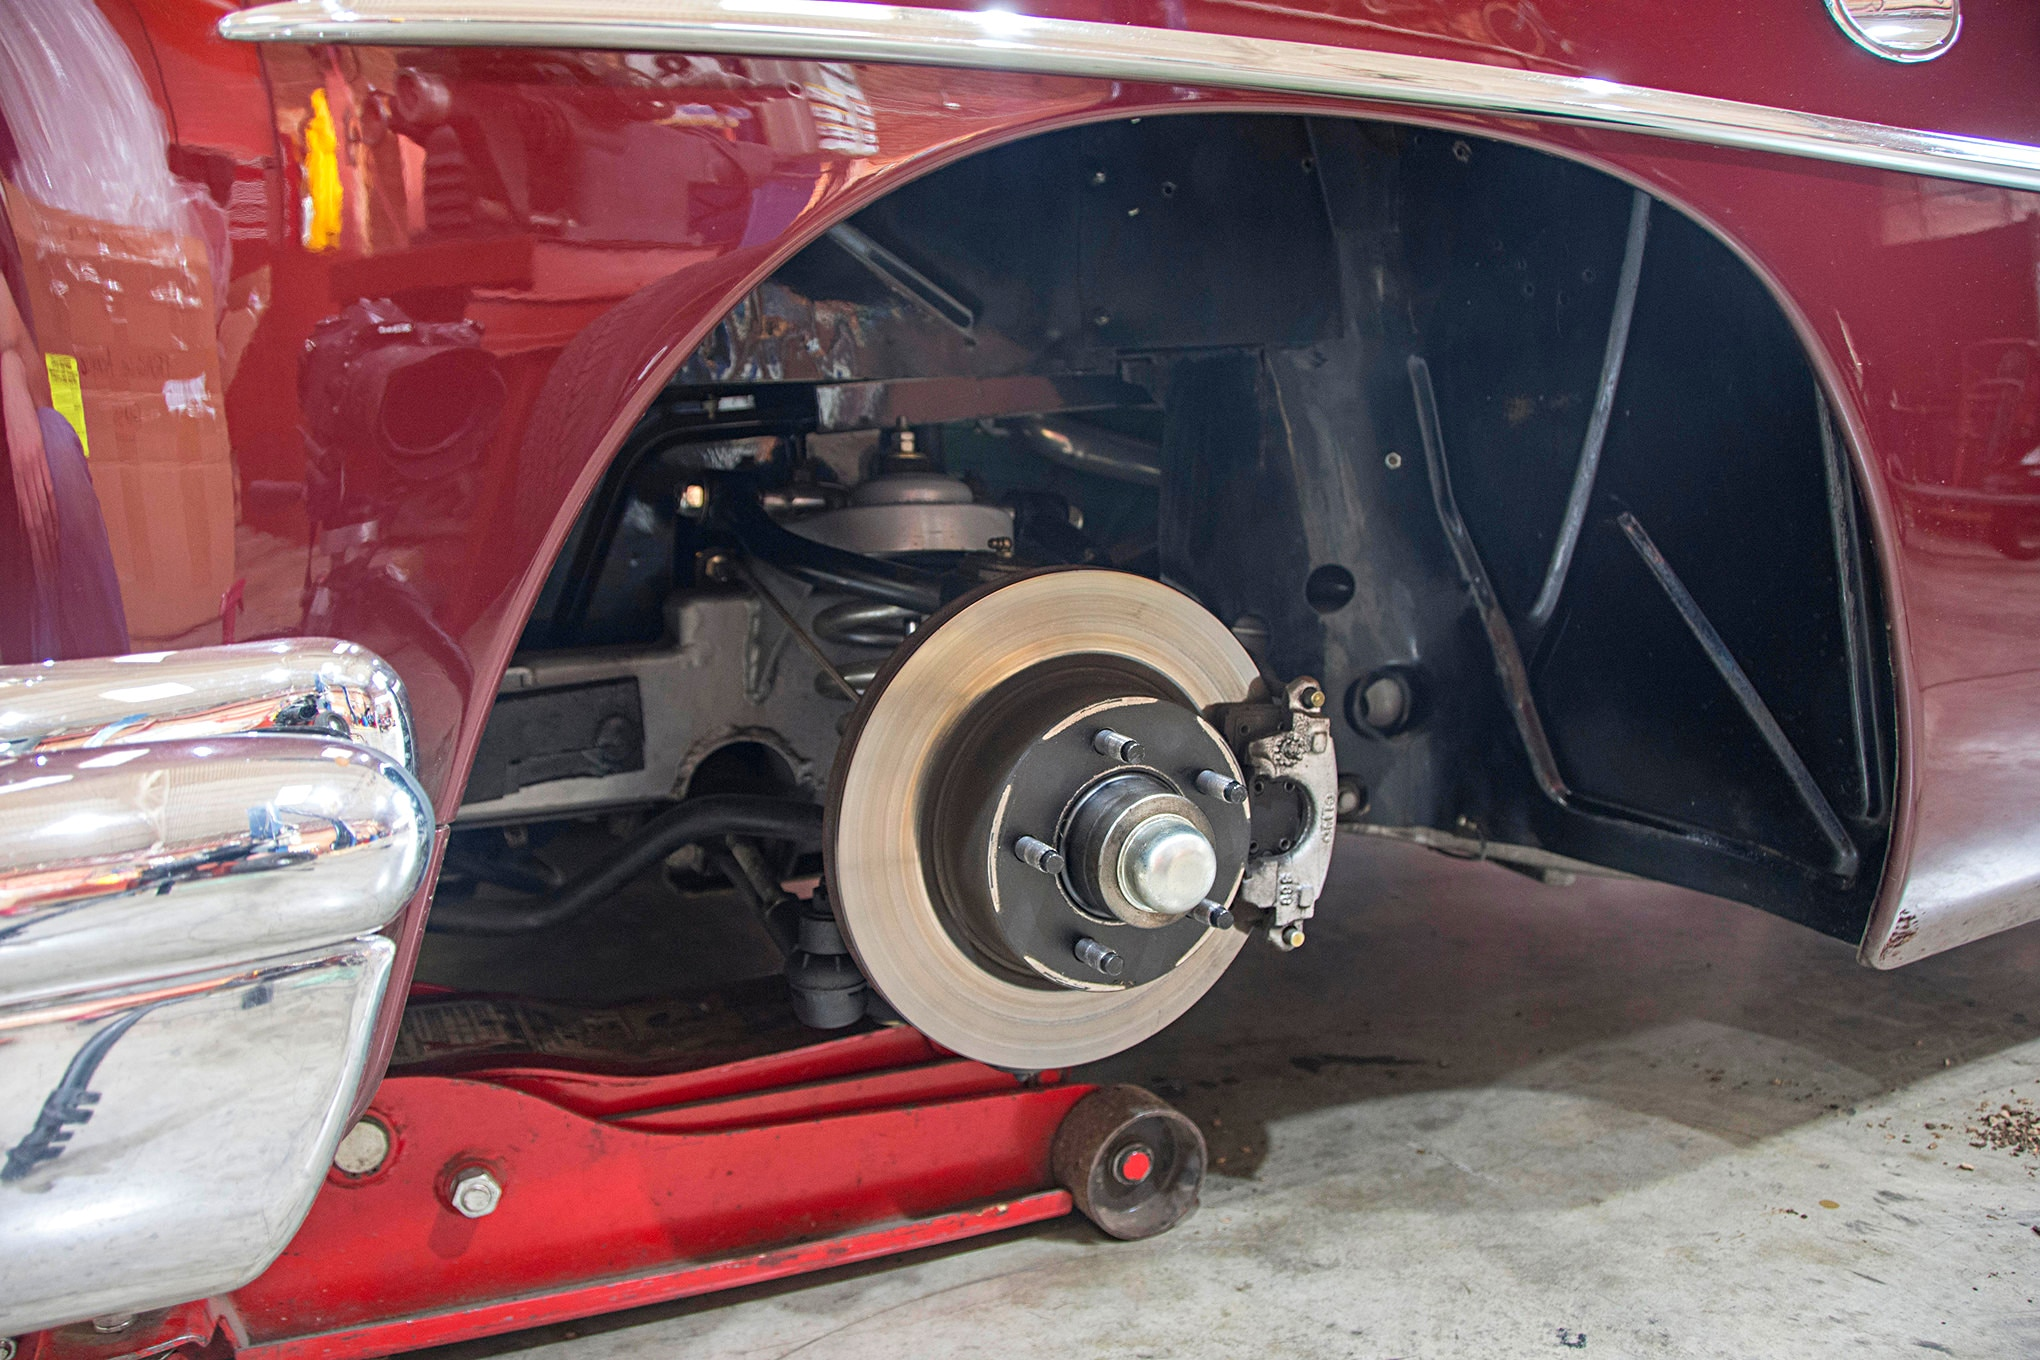 Our subject is a 1954 Buick, which features a Mustang II front suspension with GM-style disc brakes. Some cars have drastically different track widths when comparing drum brakes to disc brake conversions, so always take that into consideration. When measuring for tire and wheel fitment, always do so with the car at ride height. We place the jack beneath the lower control arm.